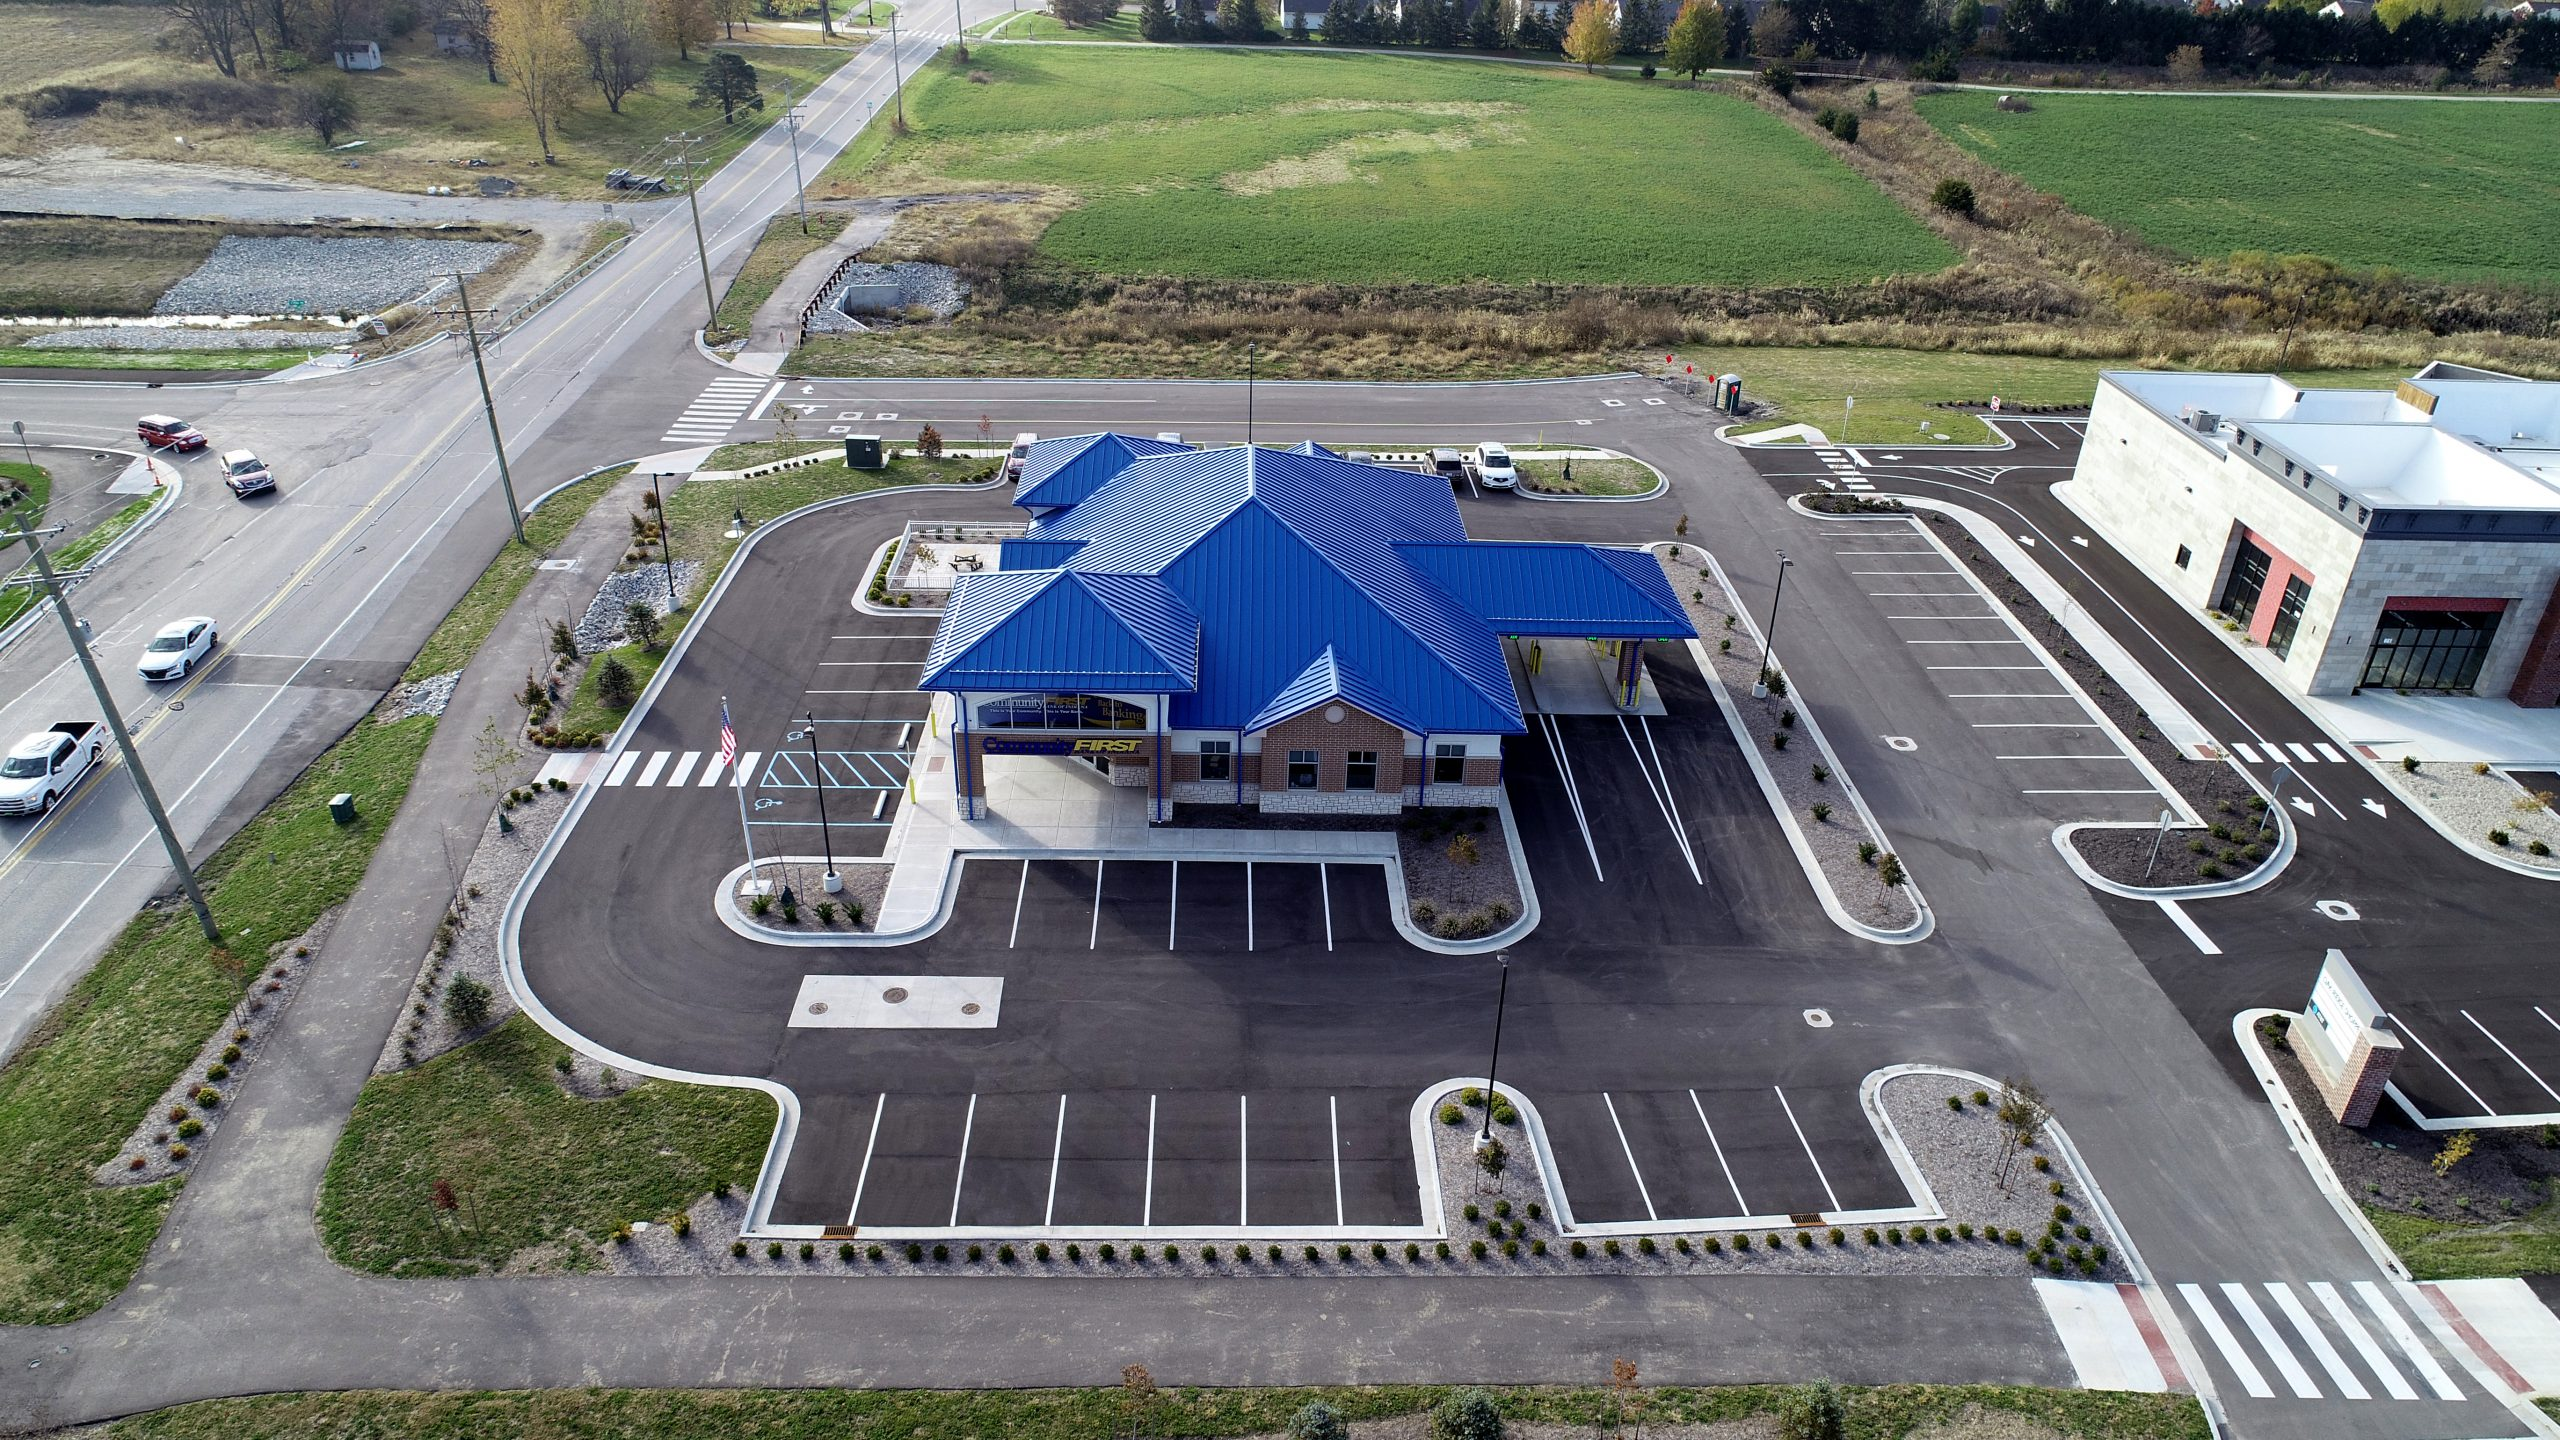 Community first bank commercial roofing project by ce reeve roofing in indiana